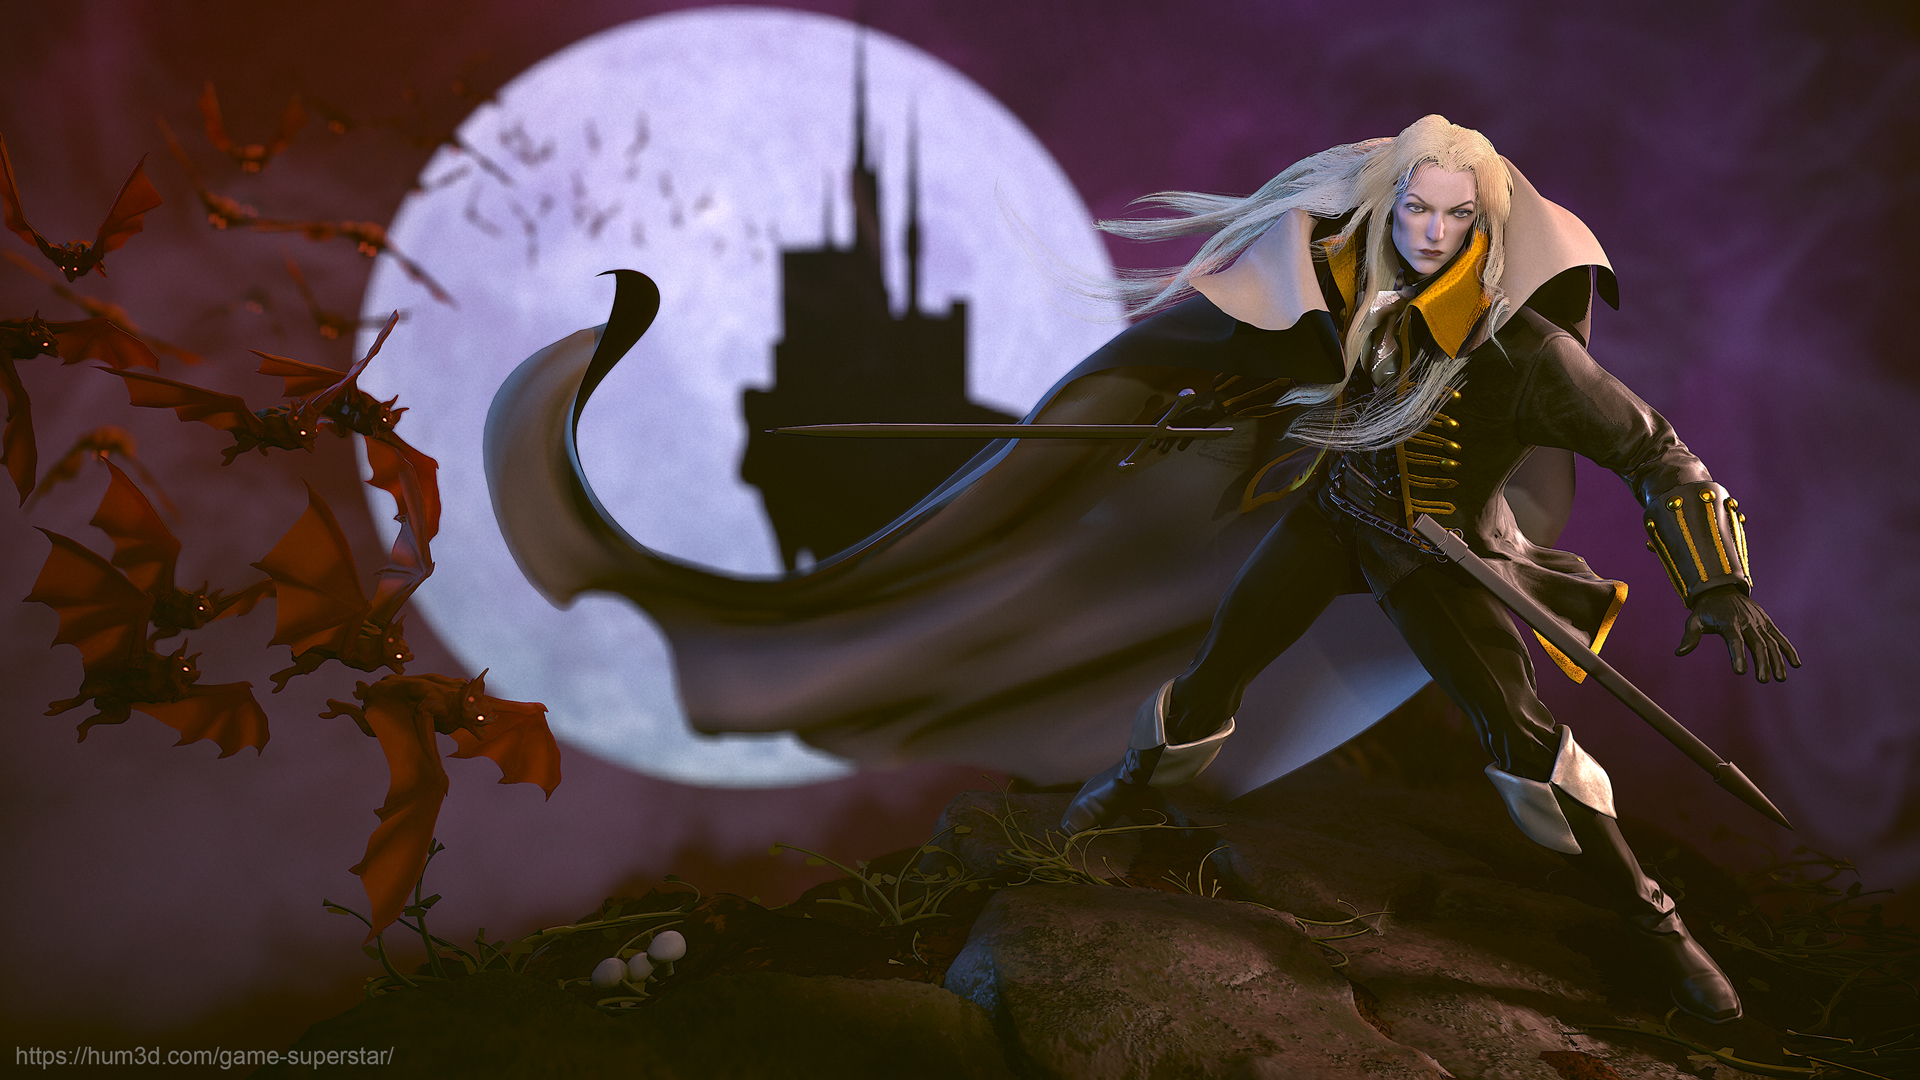 castlevania symphony of the night alucard 3d artist train clip art image train clip art image